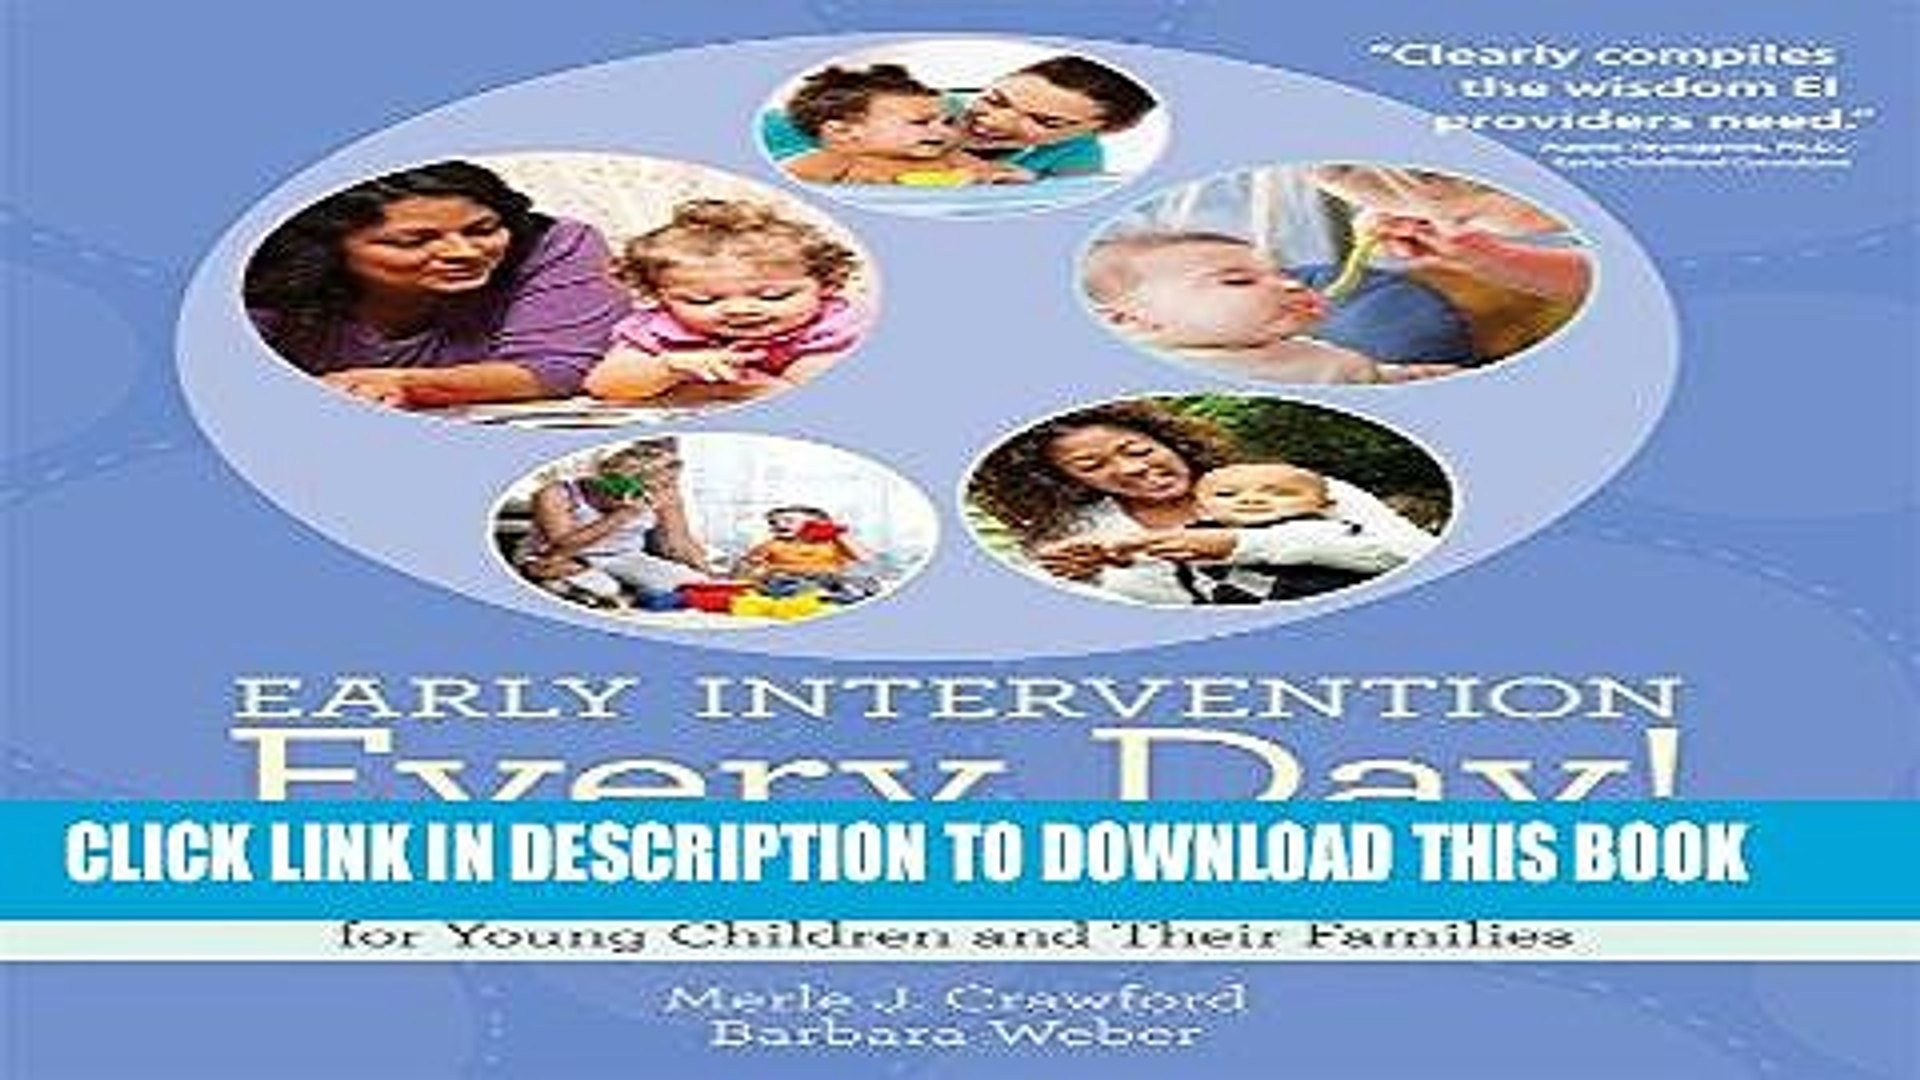 [FREE] Ebook Early Intervention Every Day!: Embedding Activities in Daily Routines for Young